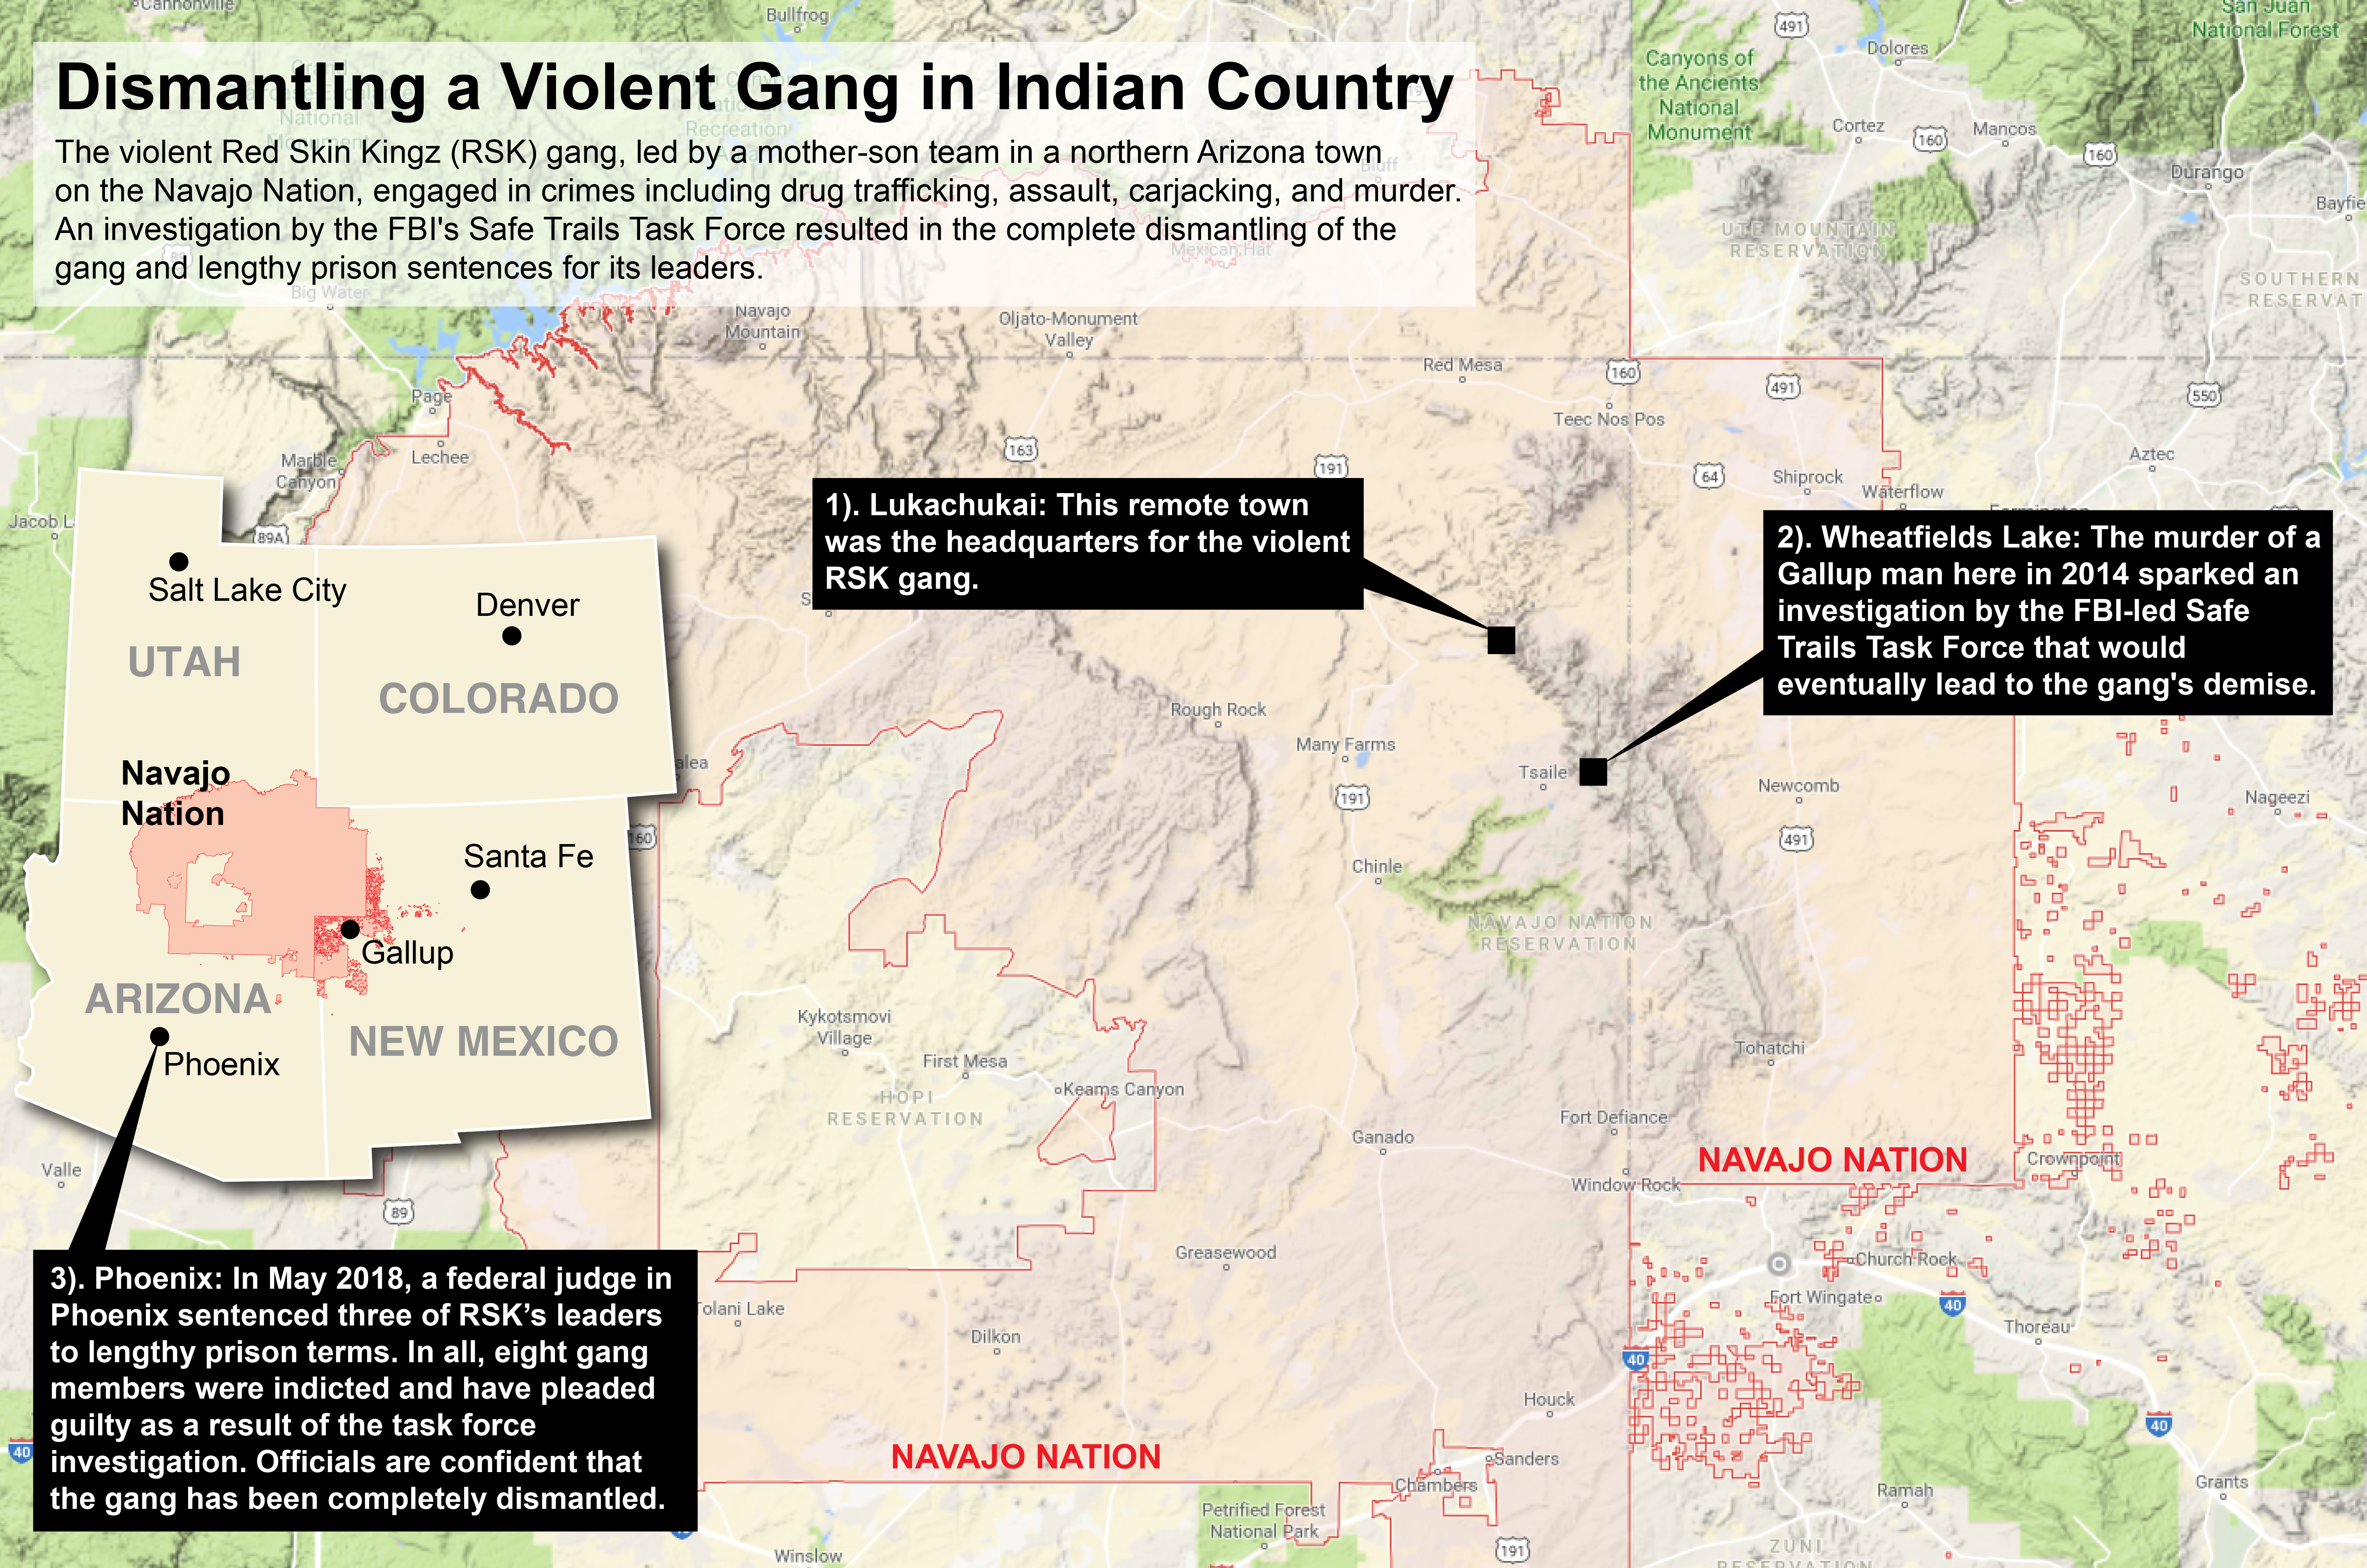 Locator map showing the Navajo Nation Indian Reservation and pinpointed activities of the violent Red Skin Kingz, or RSK, gang.